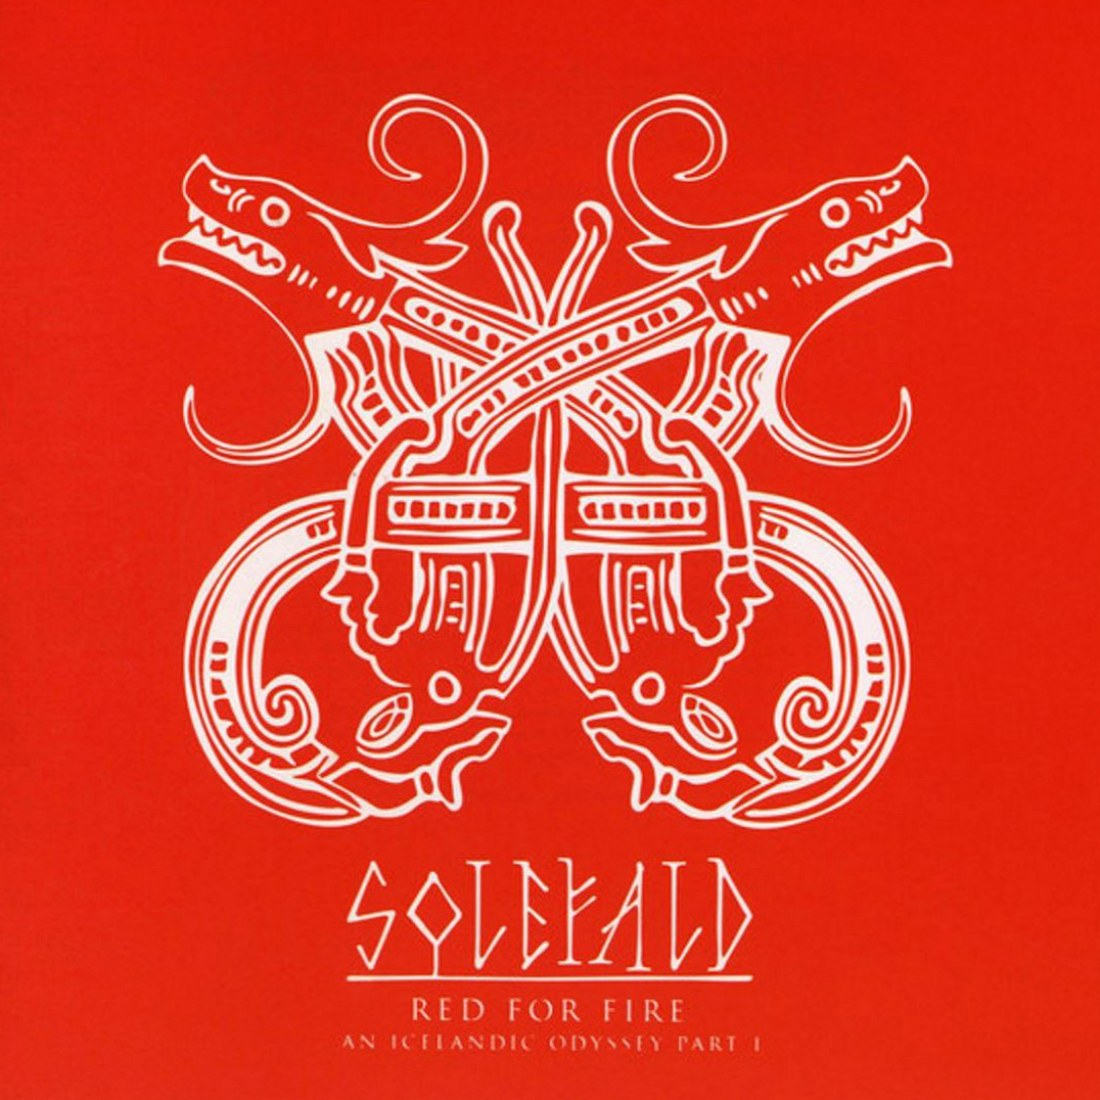 Reviews for Solefald - Red for Fire (An Icelandic Odyssey: Part I)